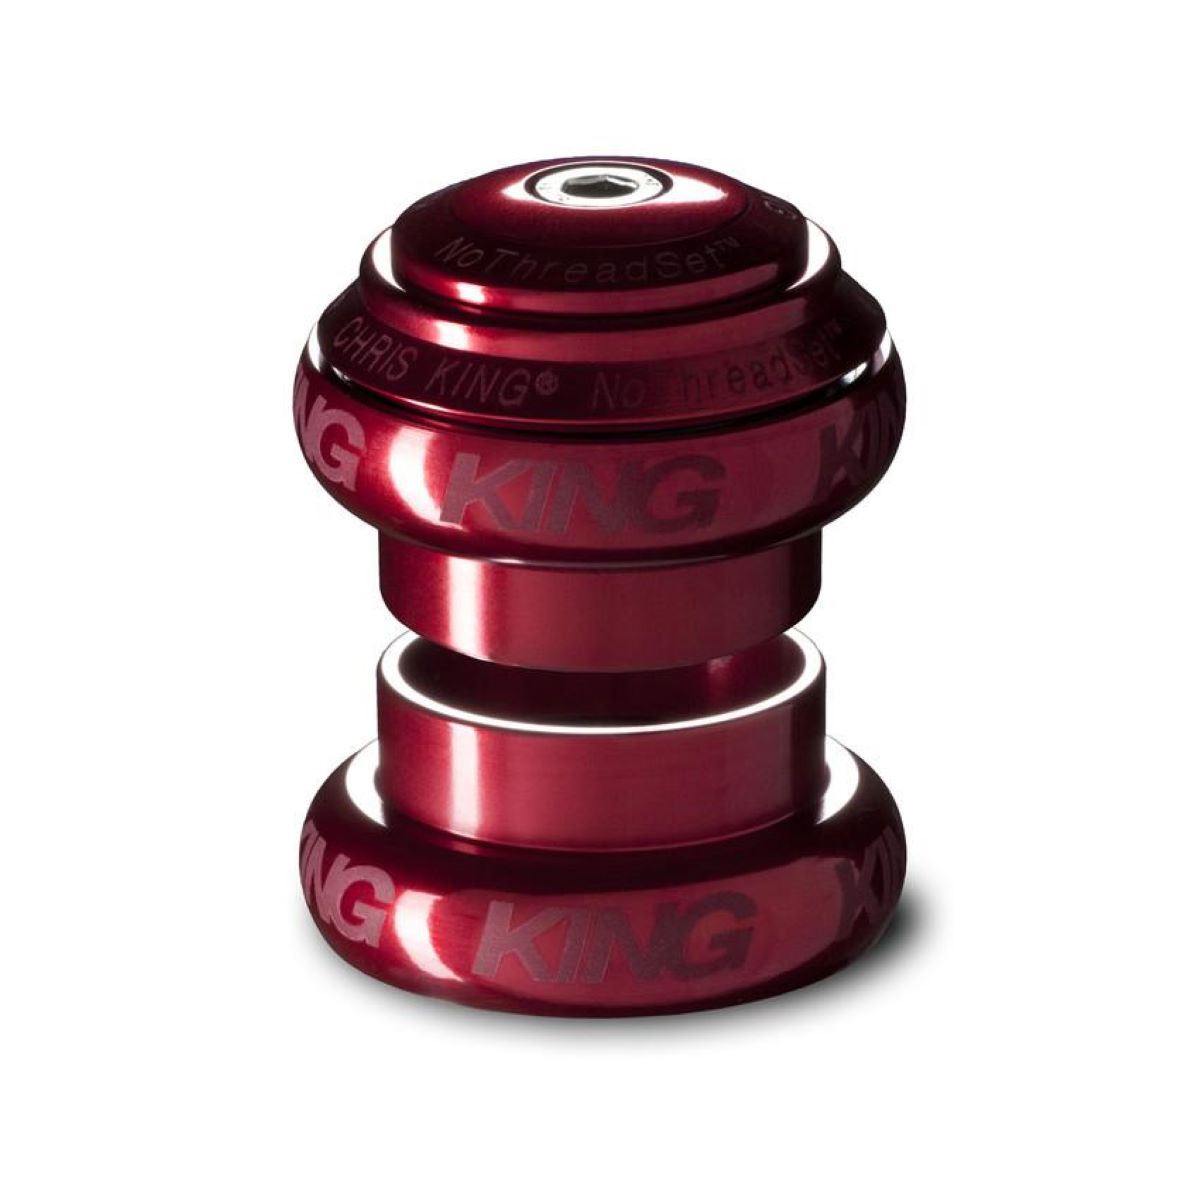 Jeu de direction Chris King No Threadset 1 1/8 pouce (alliage) - 1 1/8'' Rouge Jeux de direction